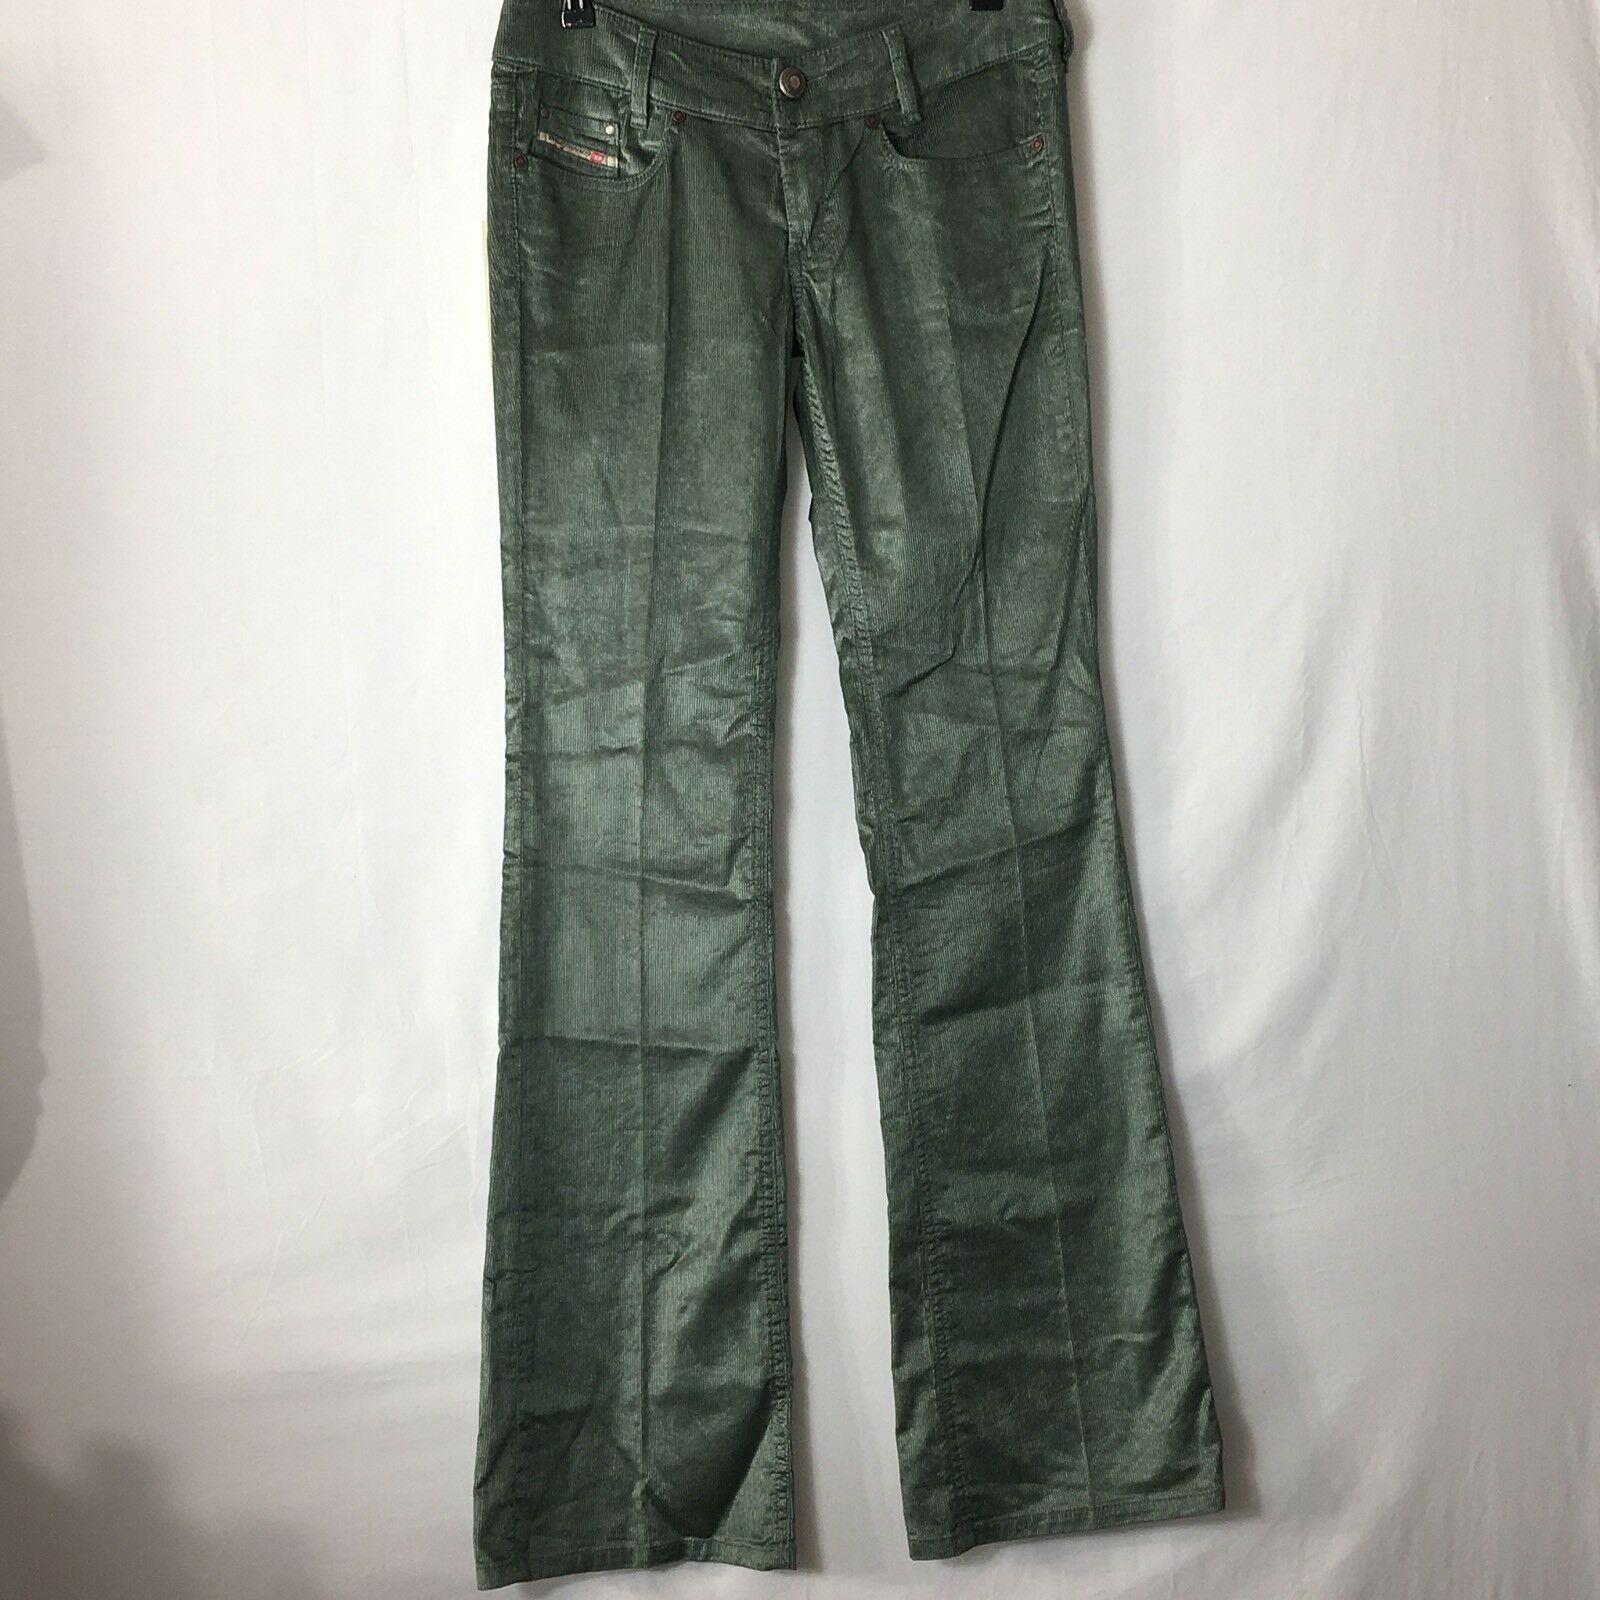 Diesel Womens Corduroy Pants Size 29 Green Inseam 35  New With Tags Long Pants